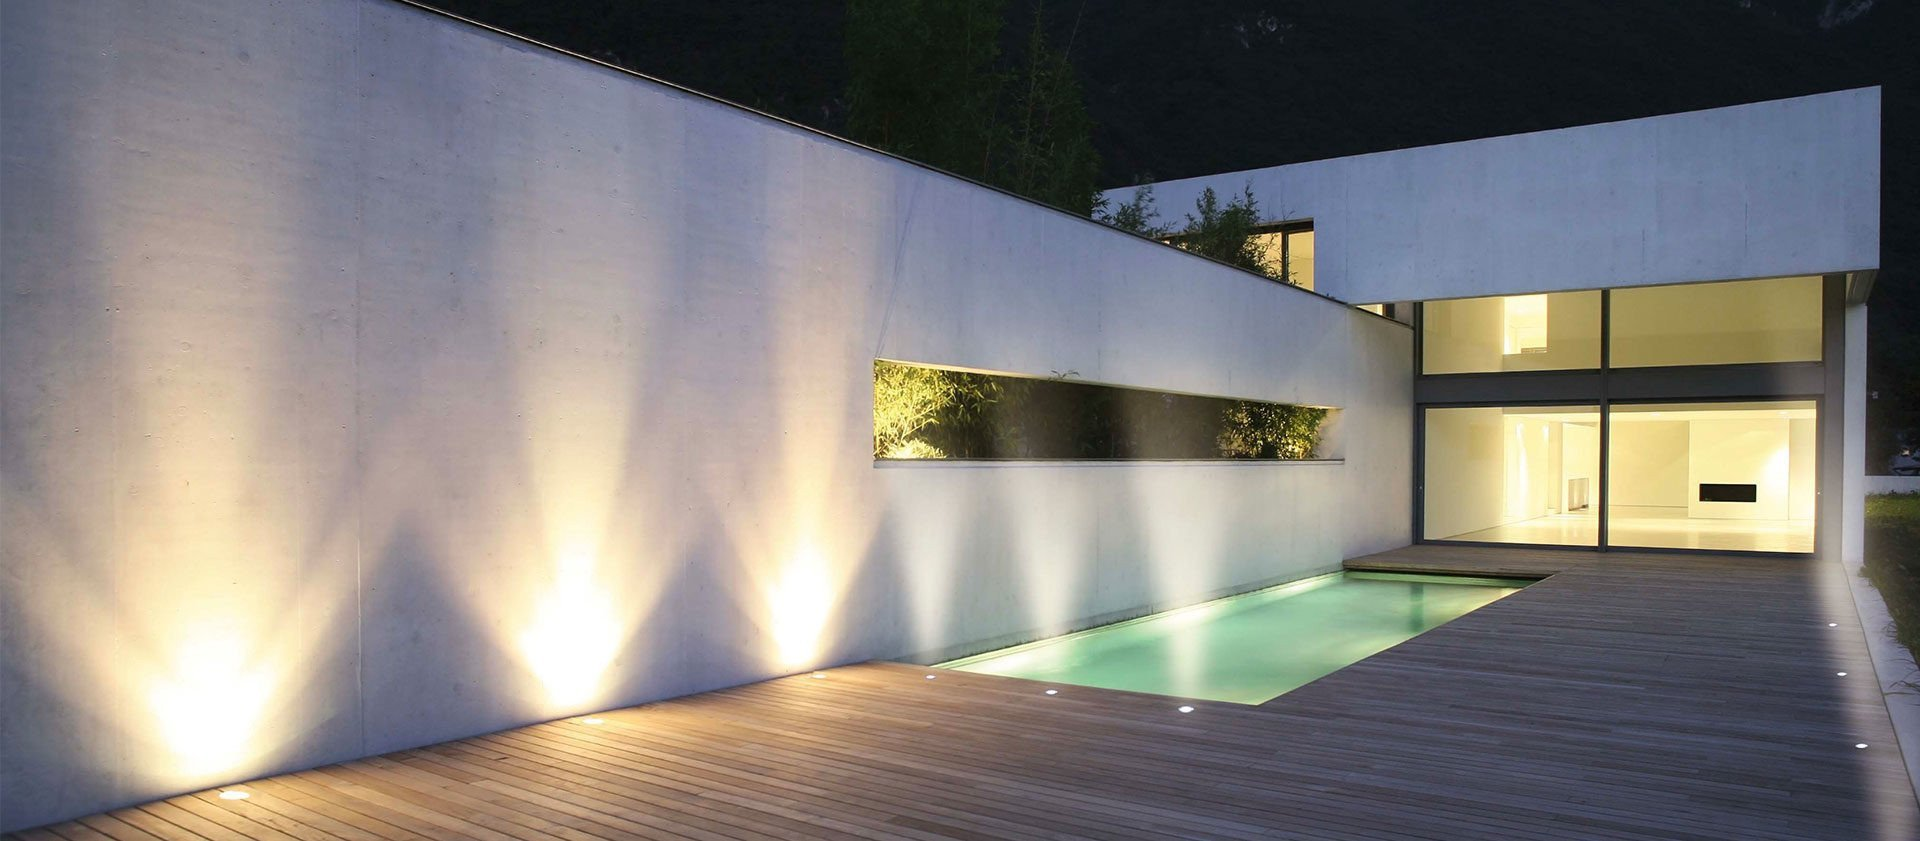 Cloture En Bois Blanc spotlights for composite wooden decks - fiberdeck